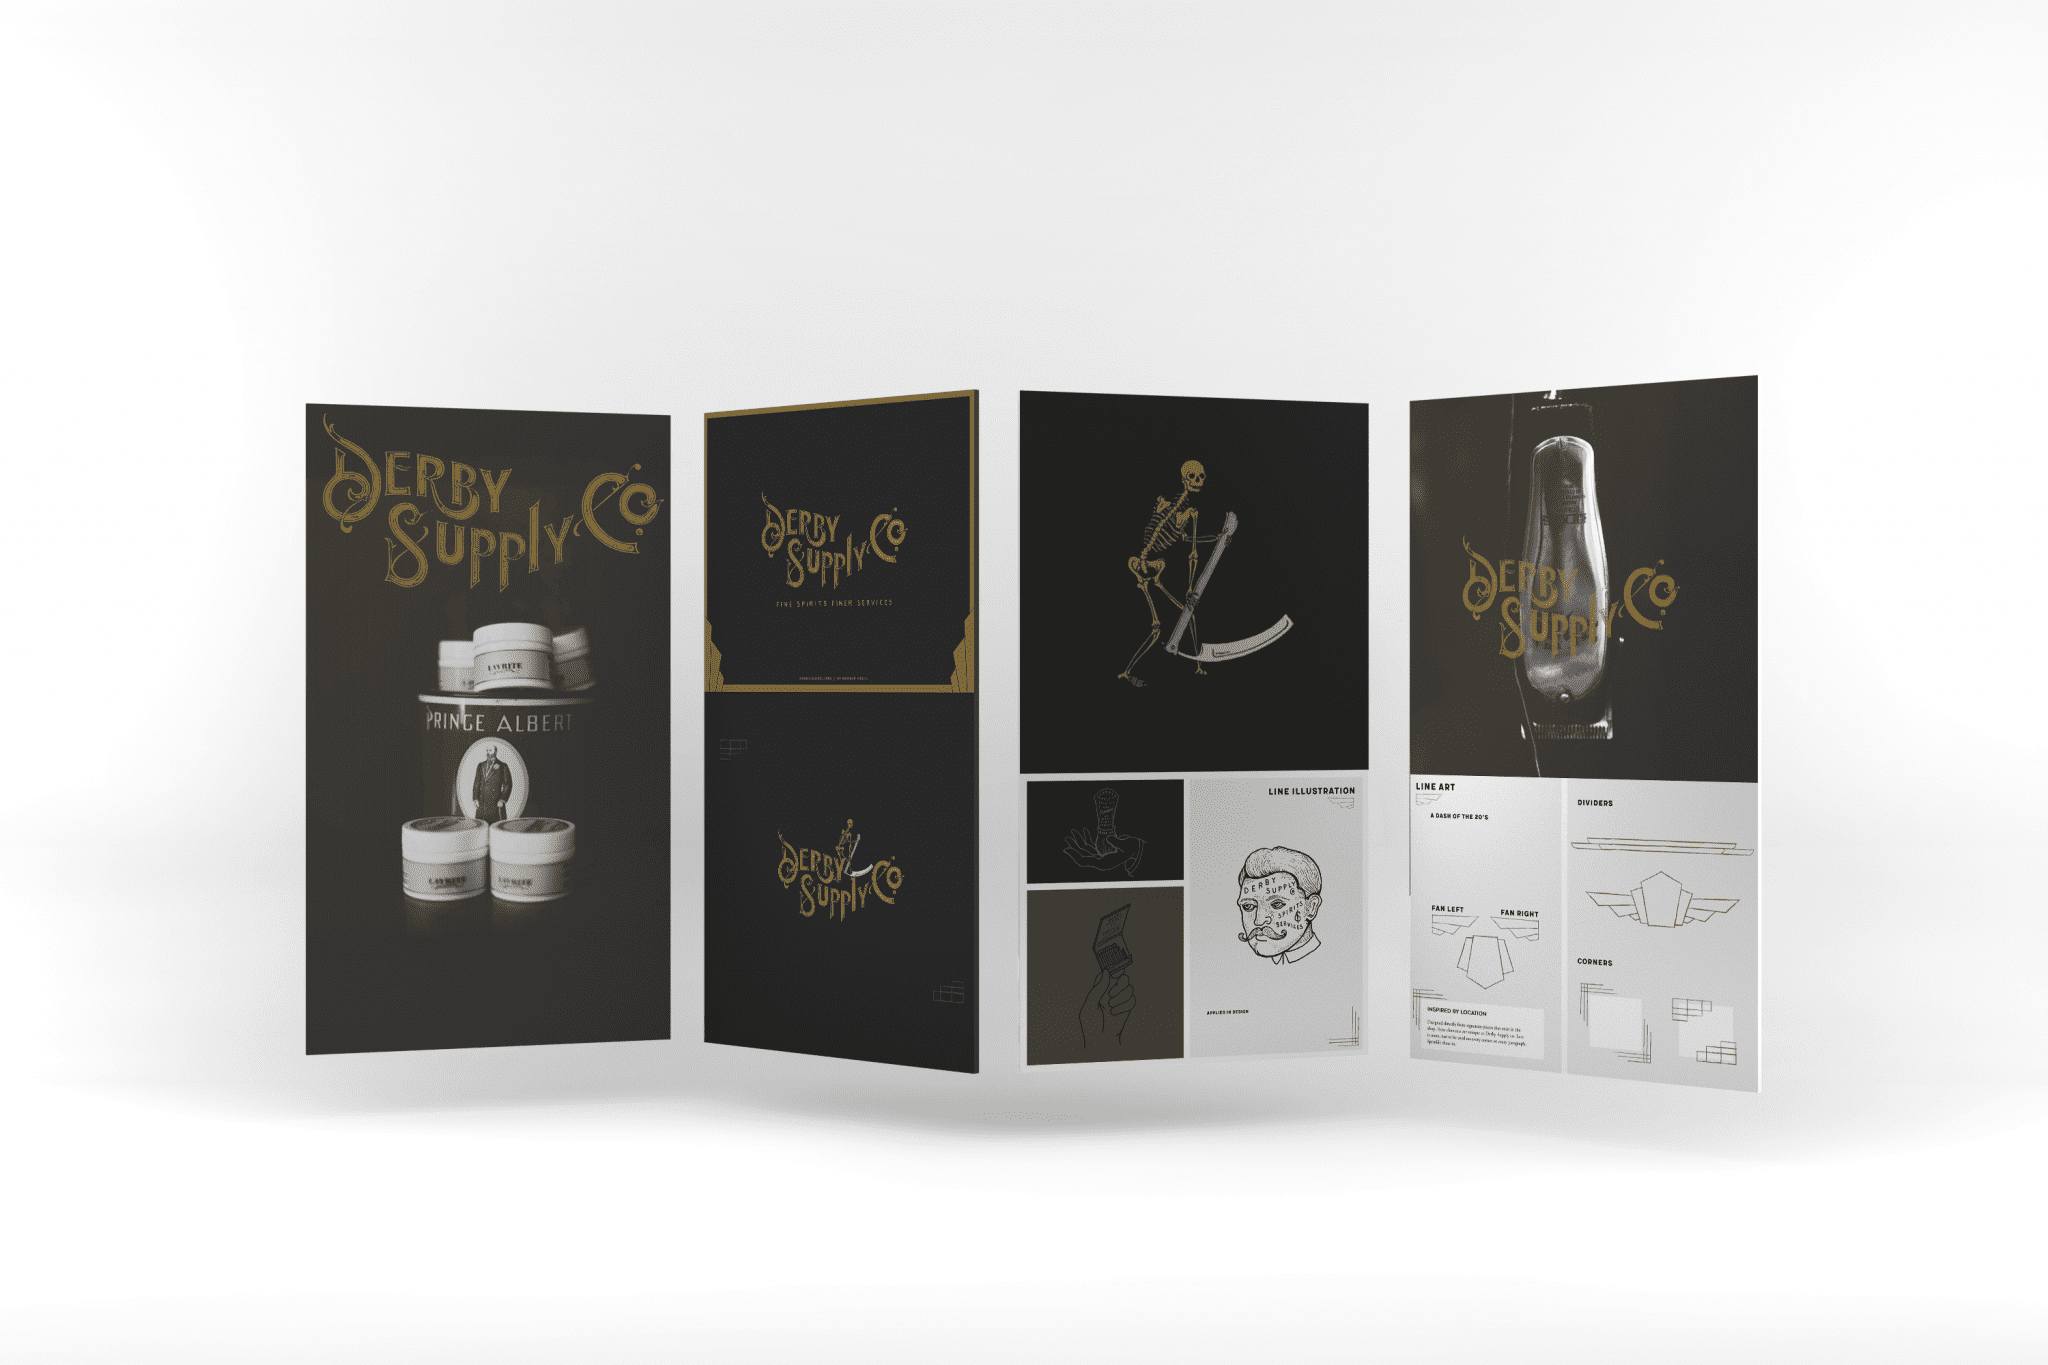 Mabble Media - Creative Agency | Derby Supply Co Brand Guide